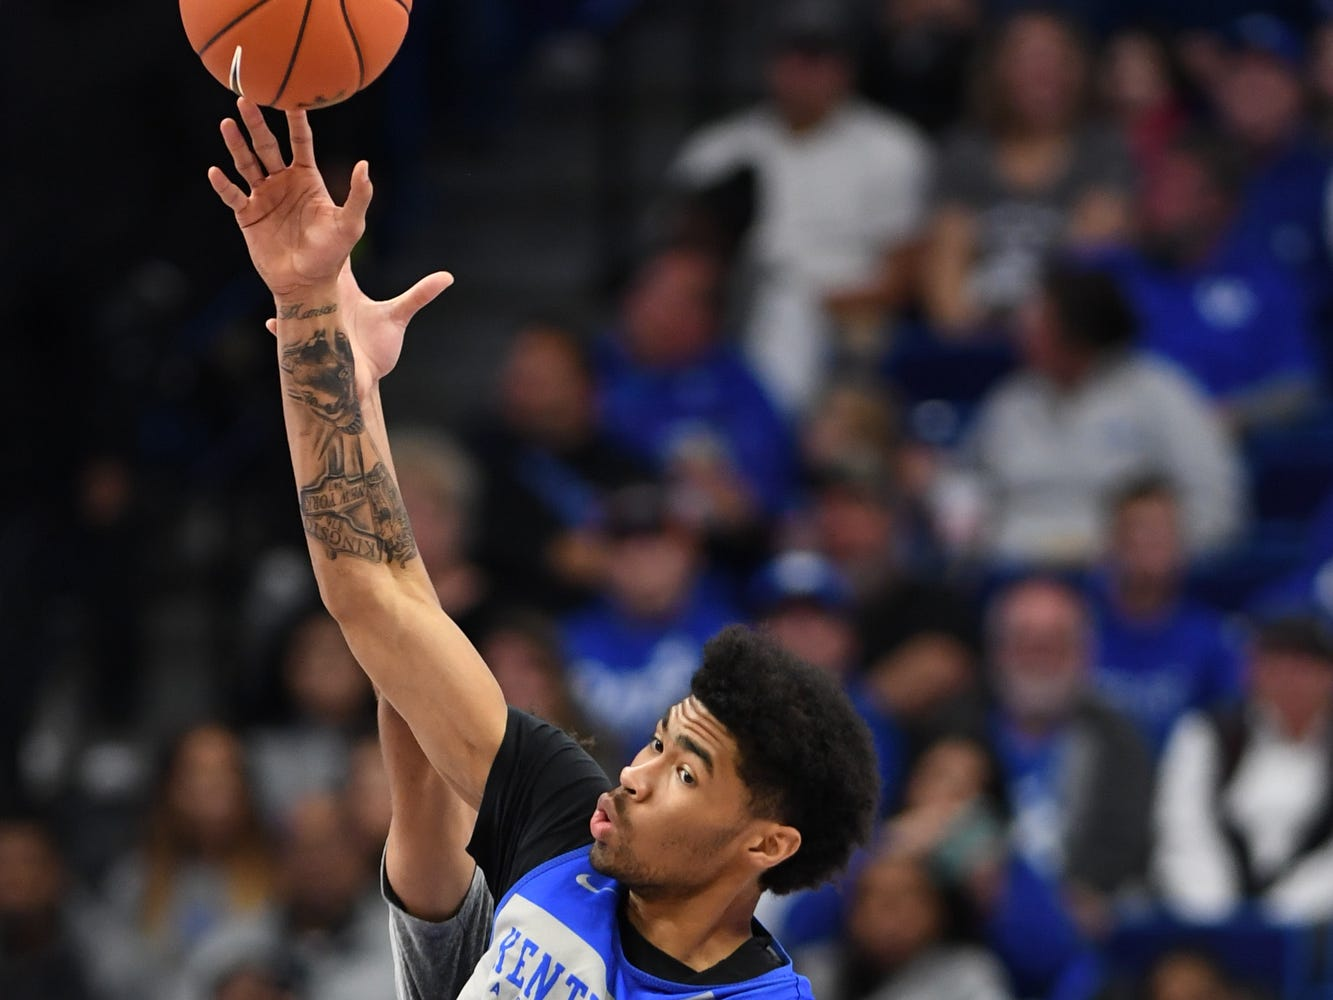 UK F Nick Richards wins the tip off to begin the University of Kentucky mens basketball Blue/White game at Rupp Arena in Lexington, Kentucky on Sunday, October 21, 2018.